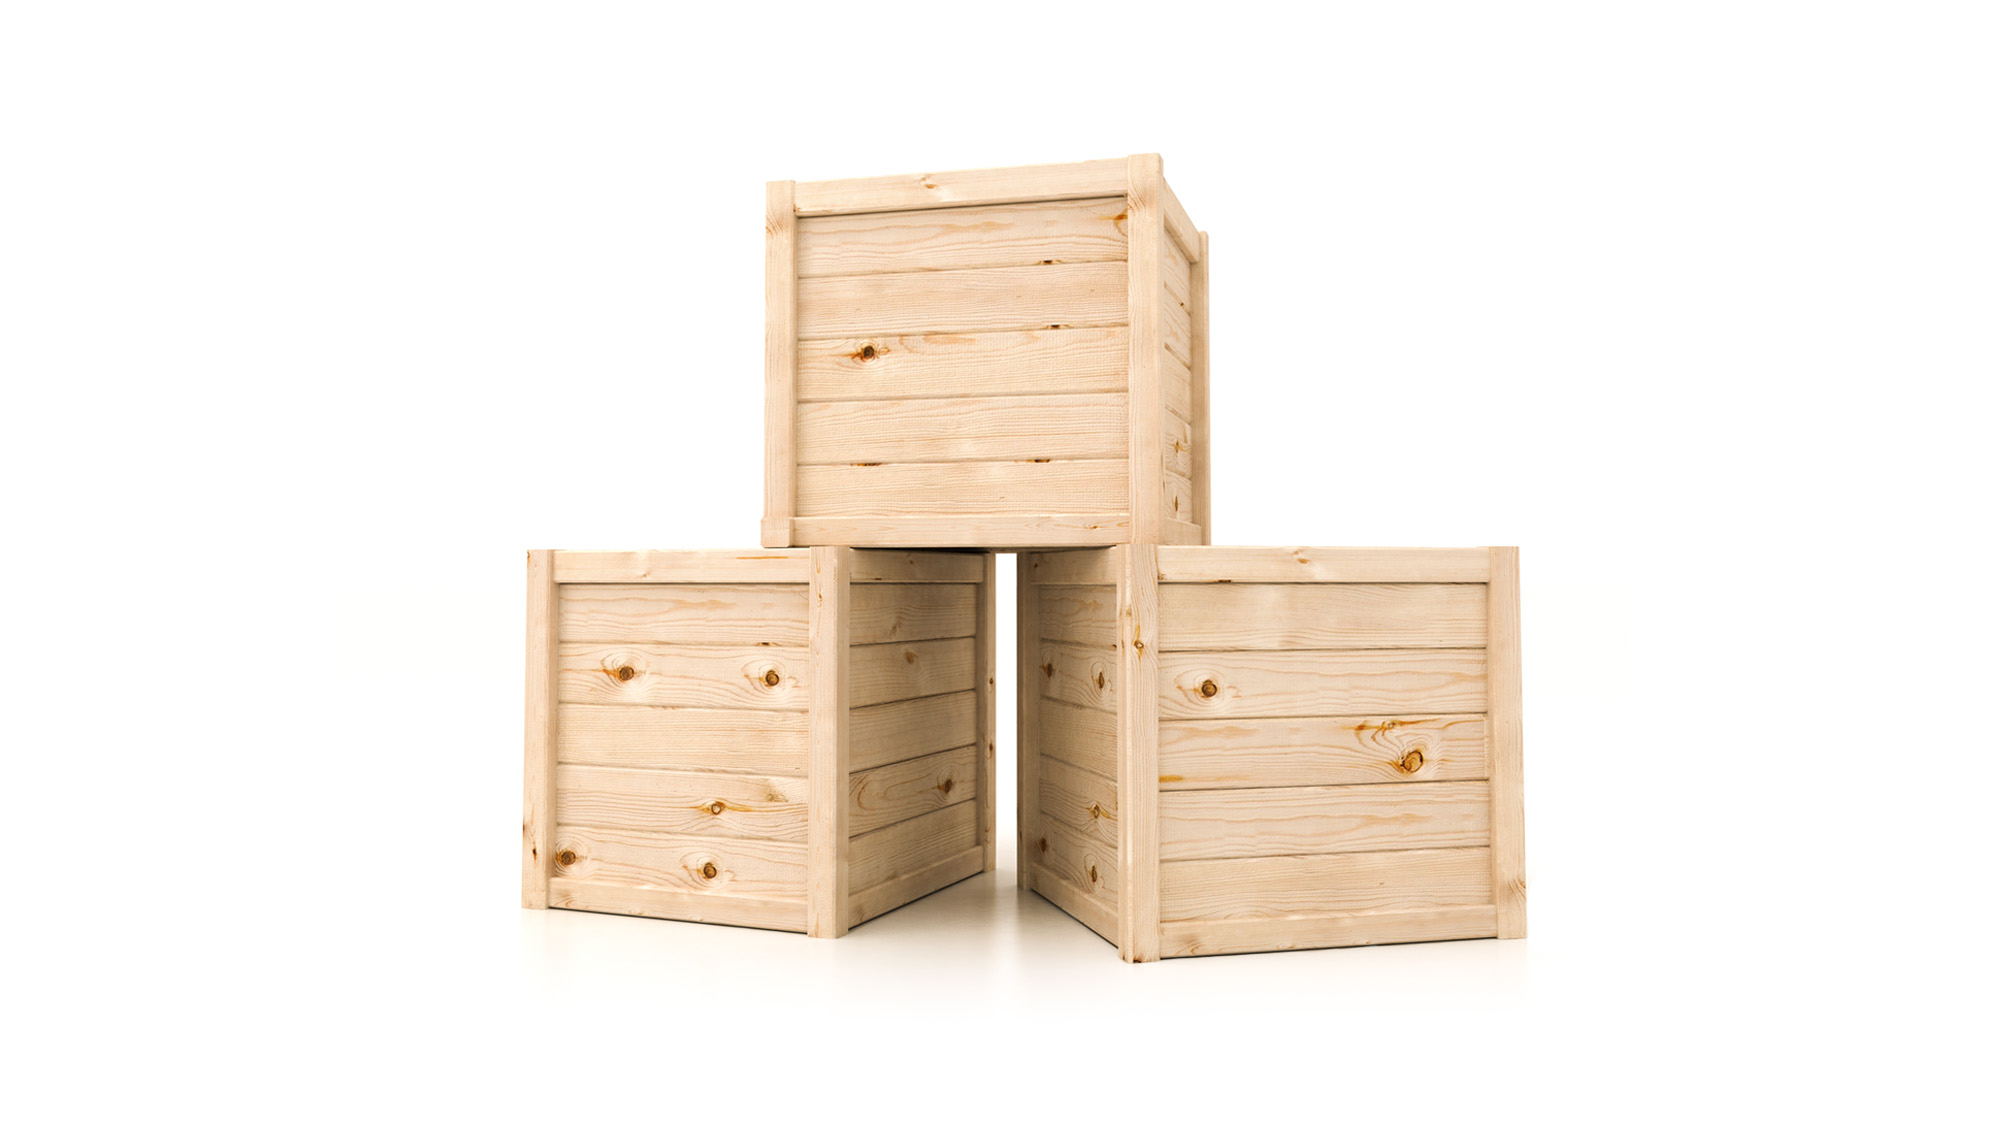 Timberr - Wooden crates